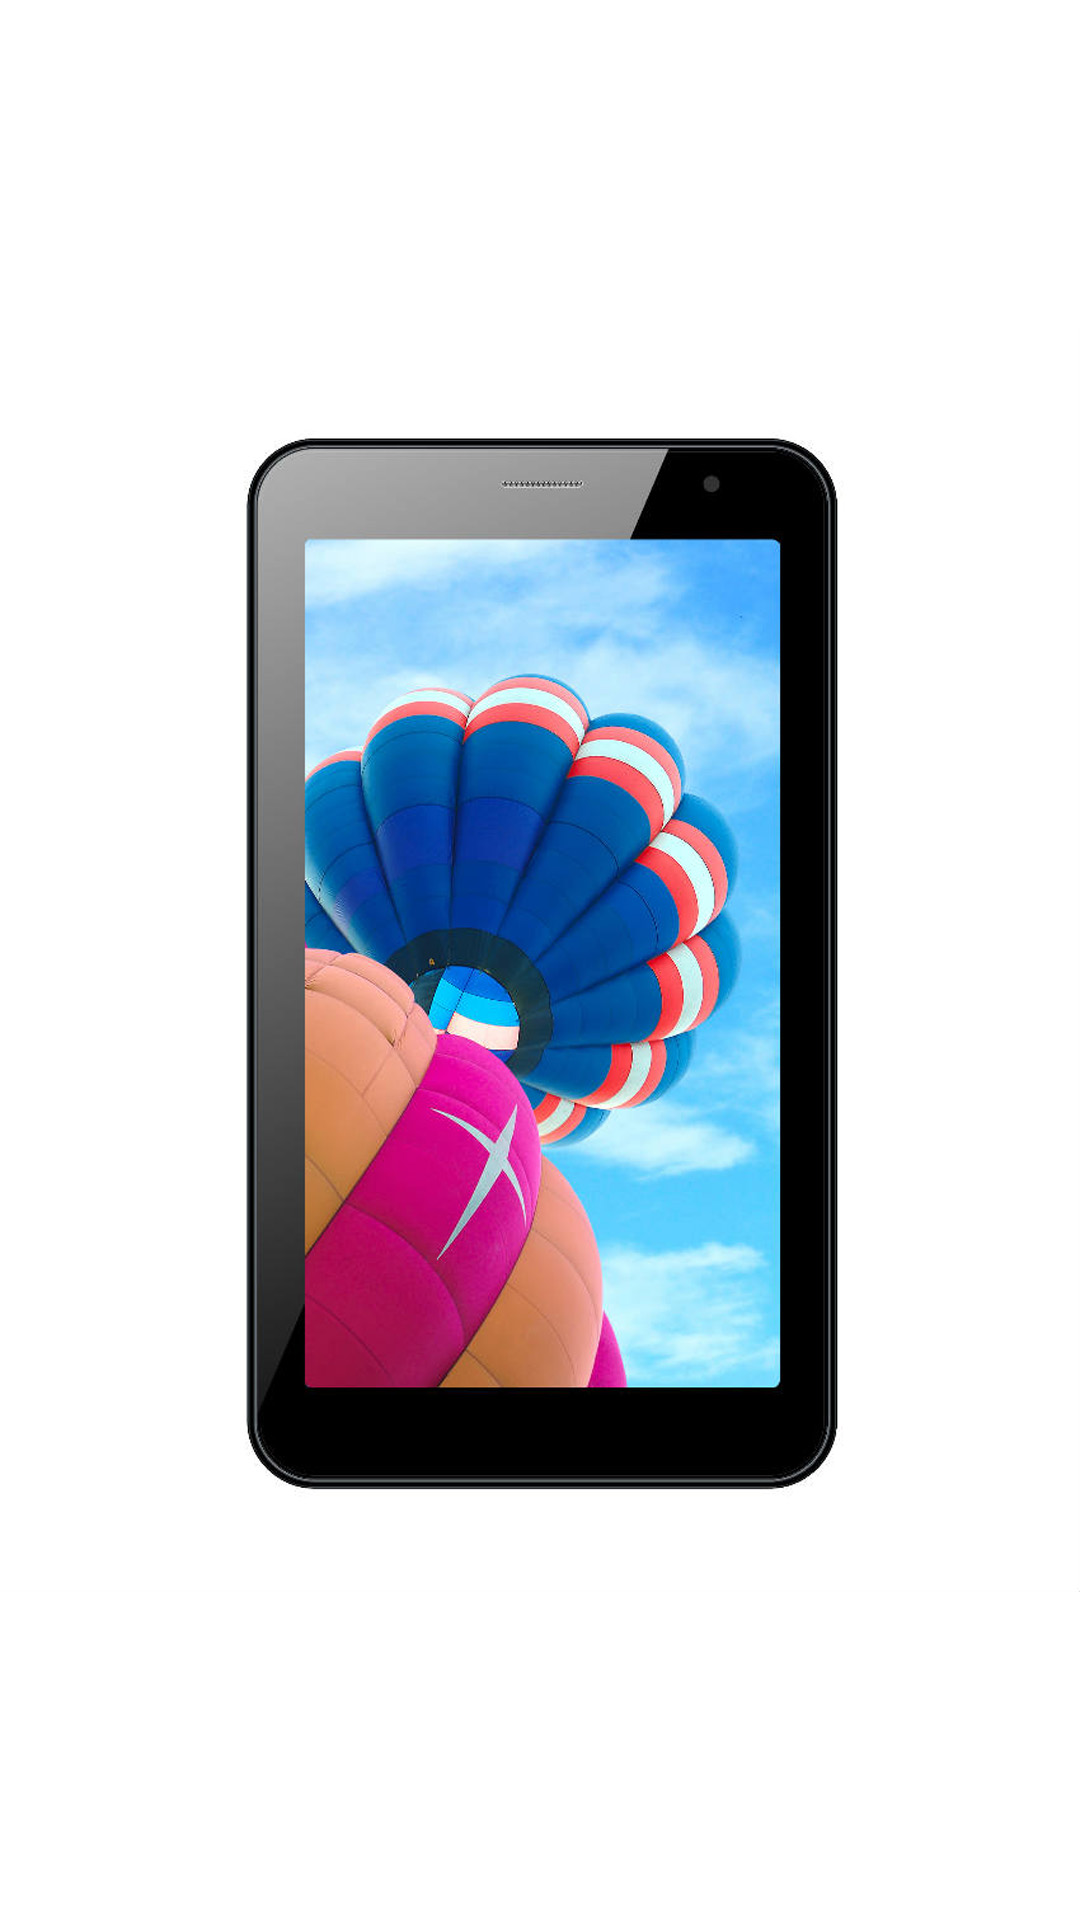 iBall D7061 Tablet 8 GB (Charcol blue)